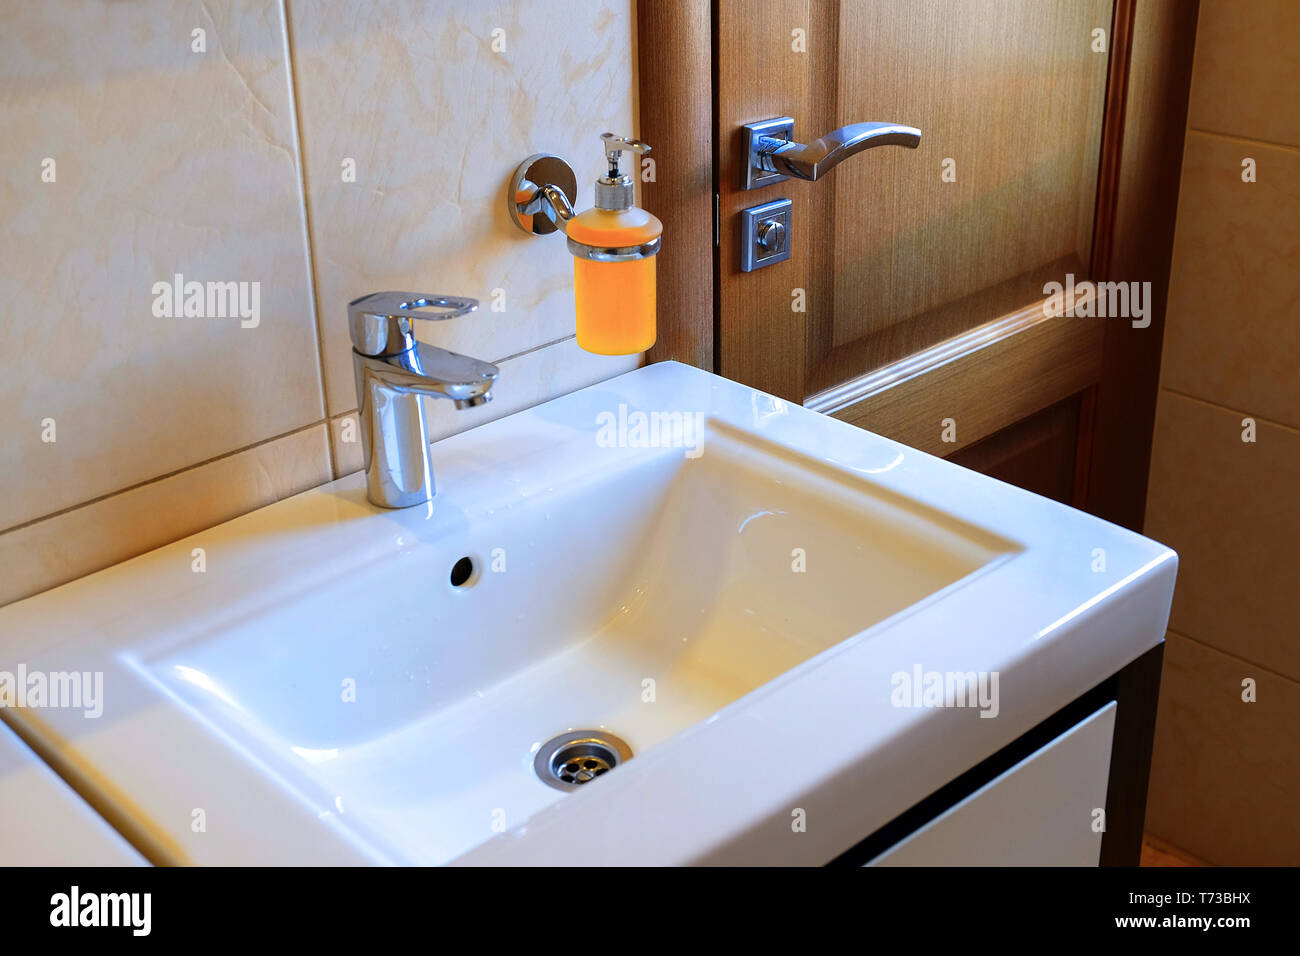 Modern Bathroom Sink In Restaurant High Resolution Stock Photography And Images Alamy